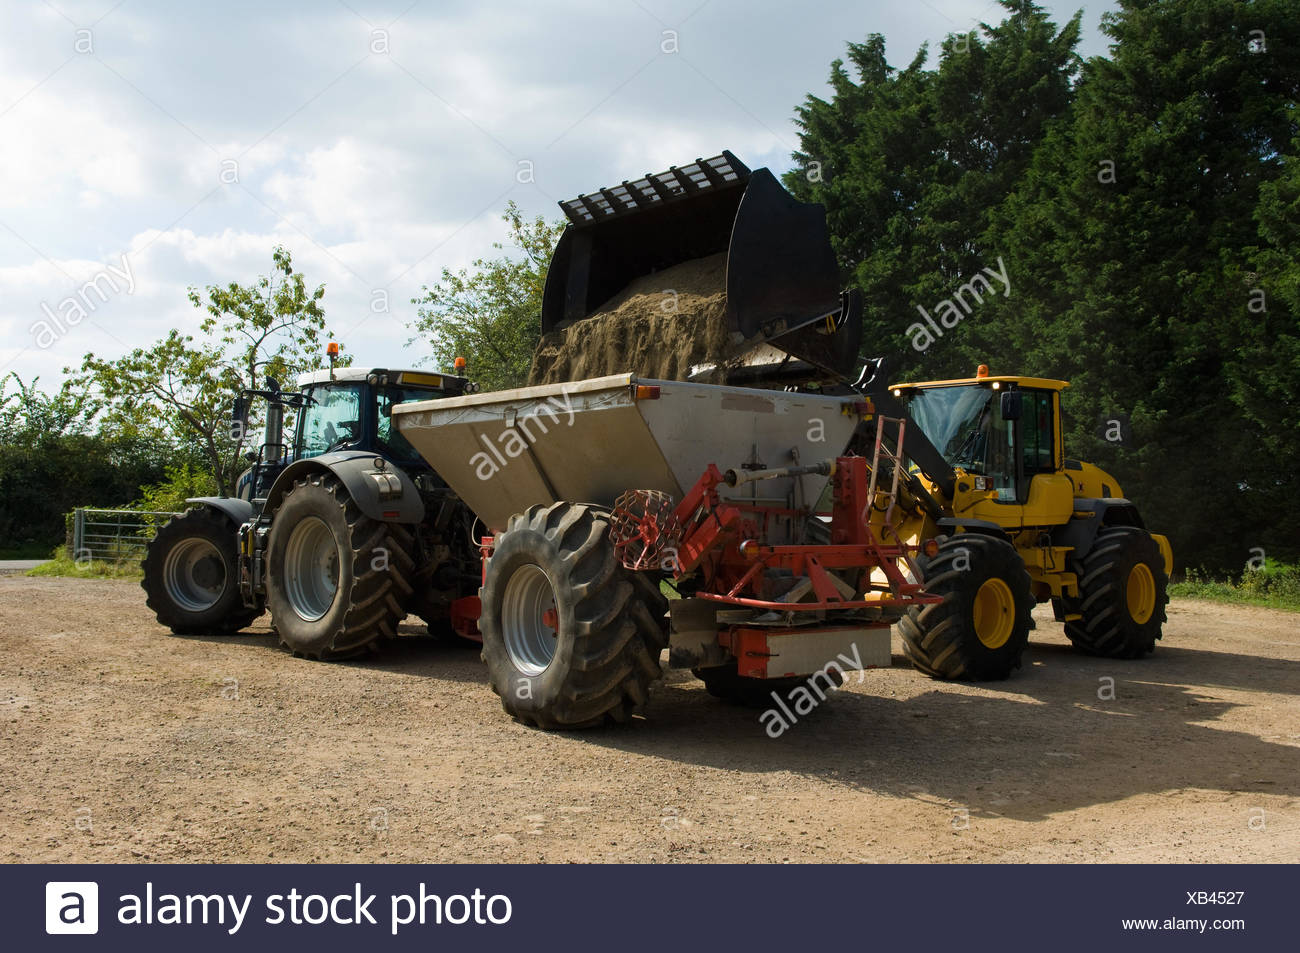 Farmer transferring organic fertilizer into fertilizer spreader in farm yard - Stock Image